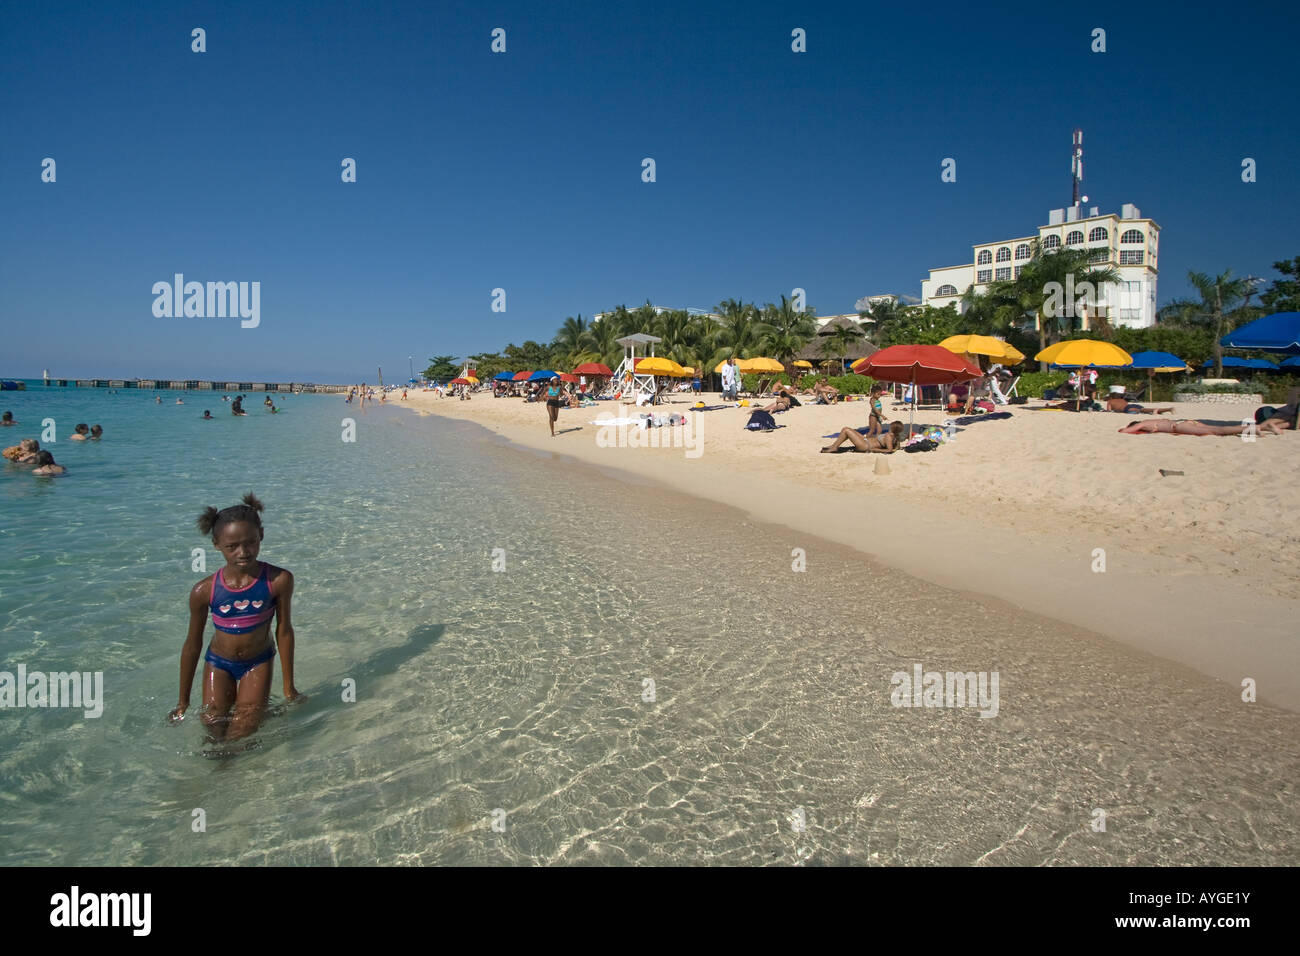 Jamaica Montego Bay beach Dr Caves beach - Stock Image